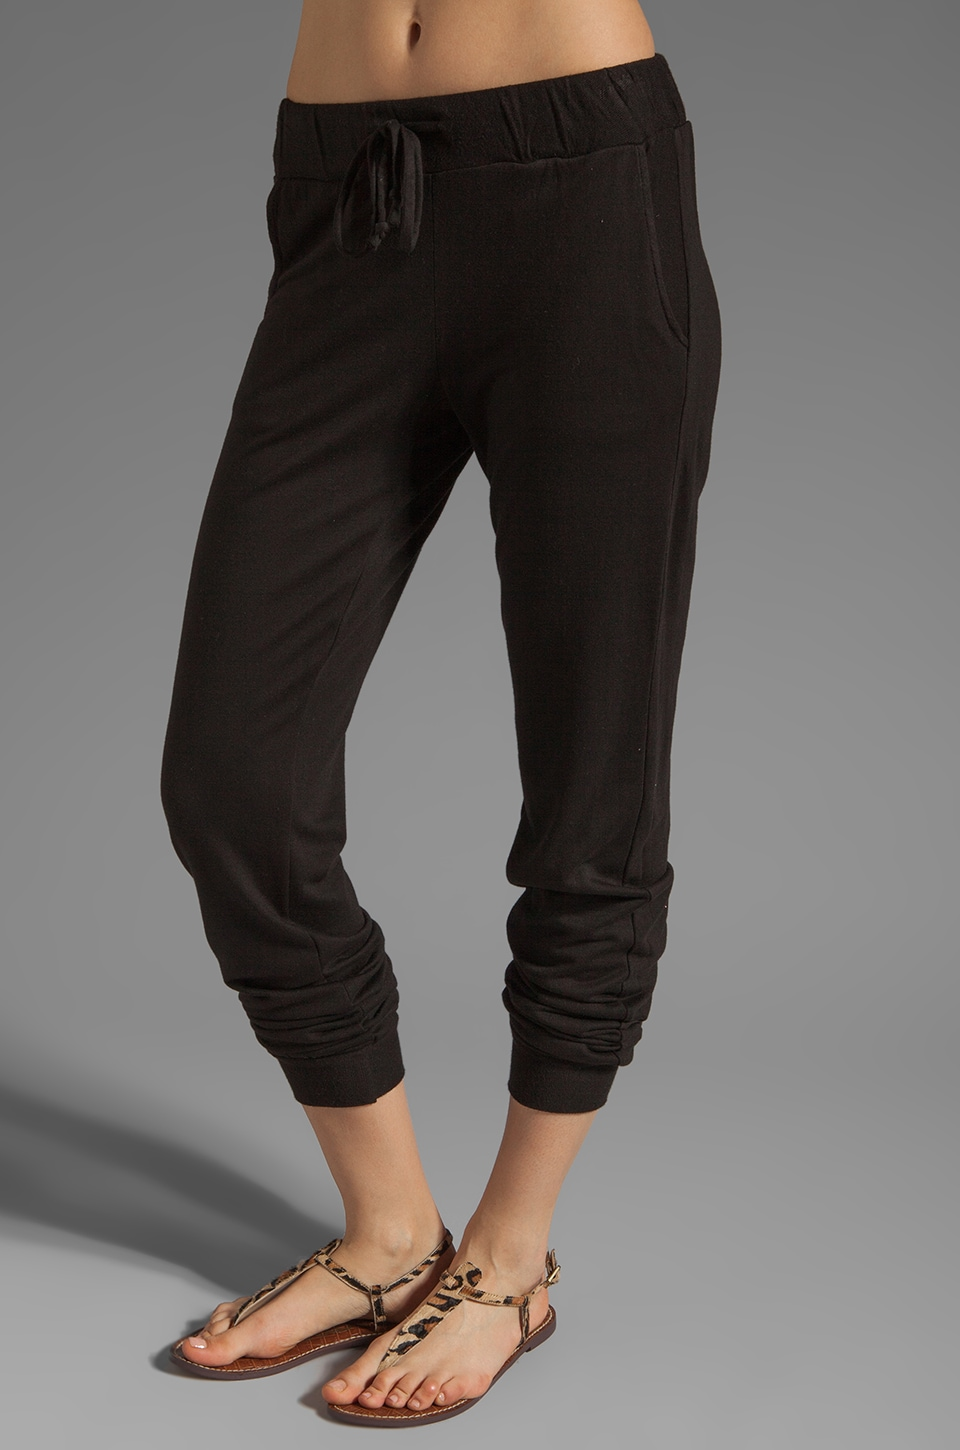 LA Made French Terry Slouchy Sweatpant in Black